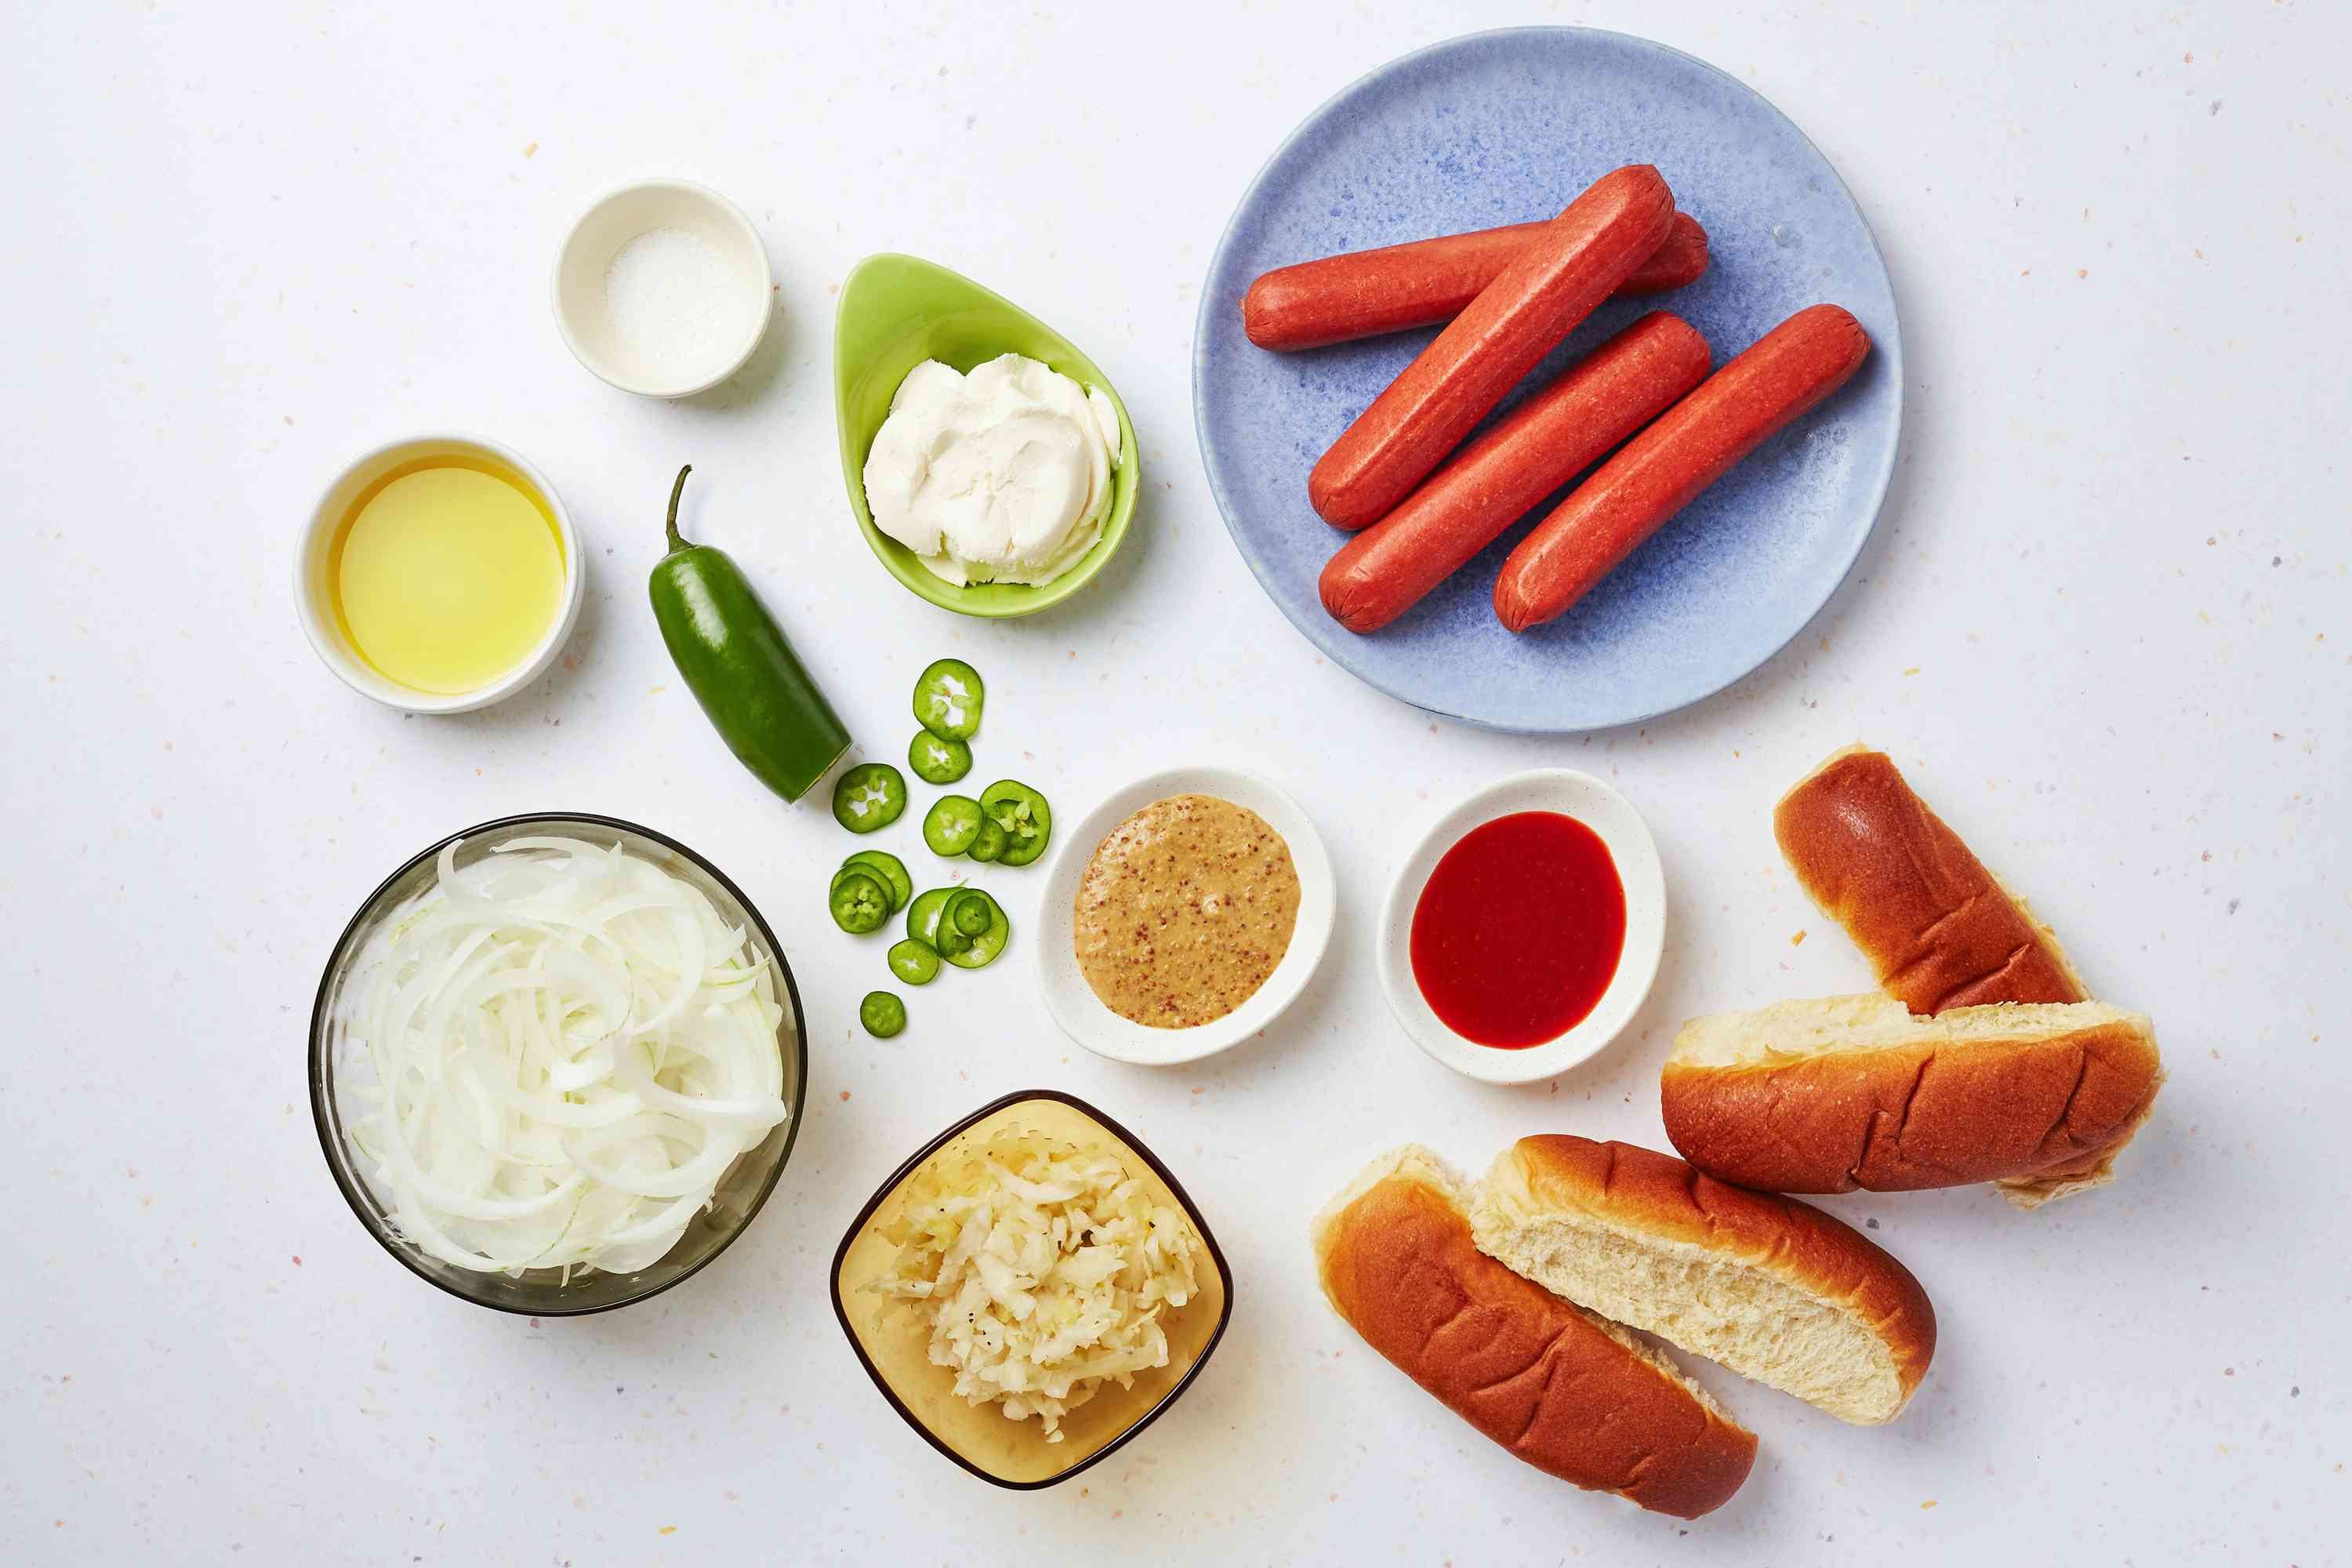 Ingredients for Seattle hot dogs